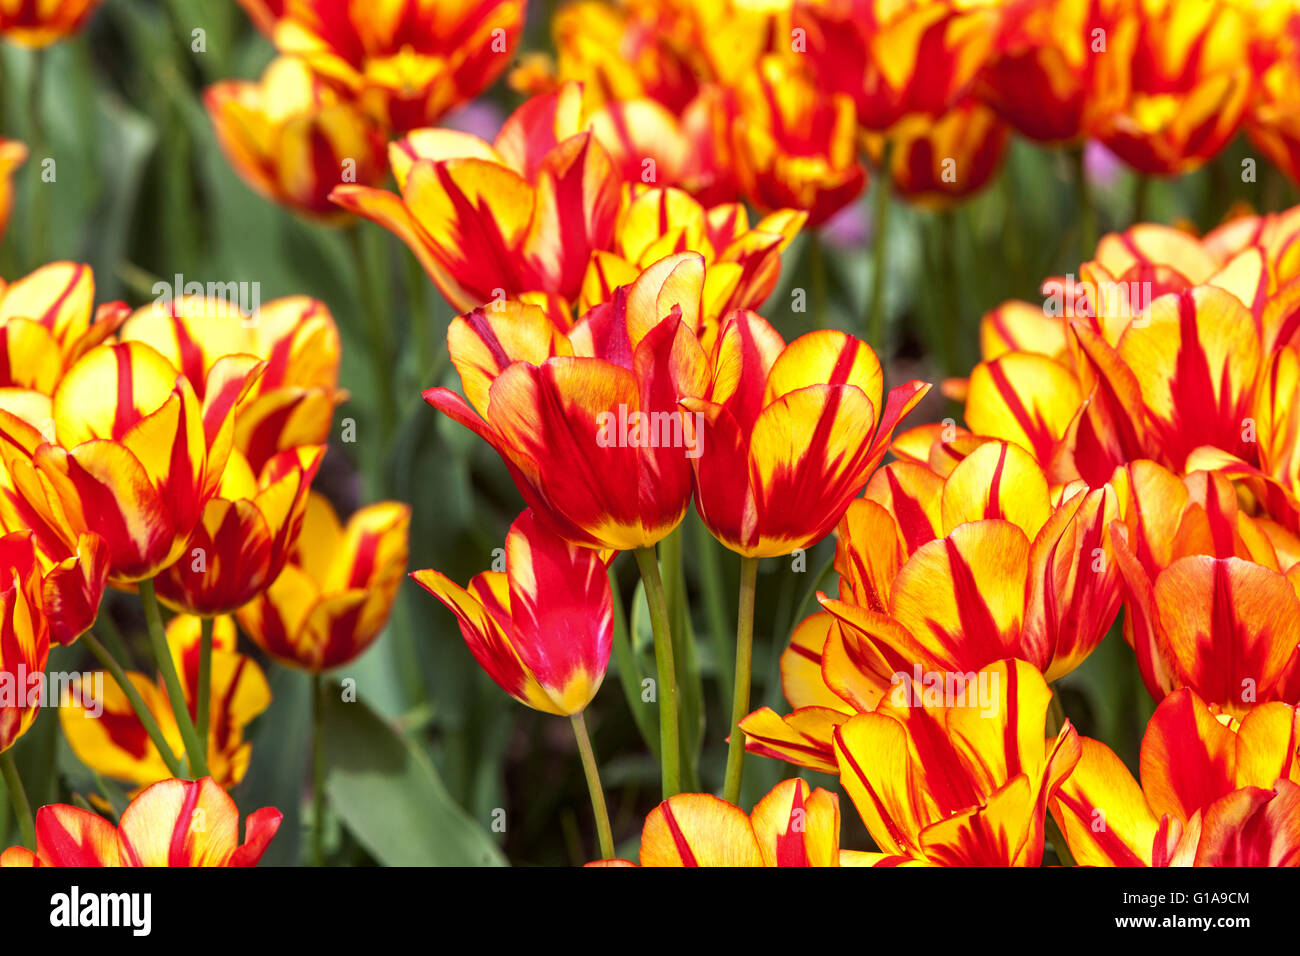 Flowering Tulips garden, Tulipa 'Color Spectacle' - Stock Image